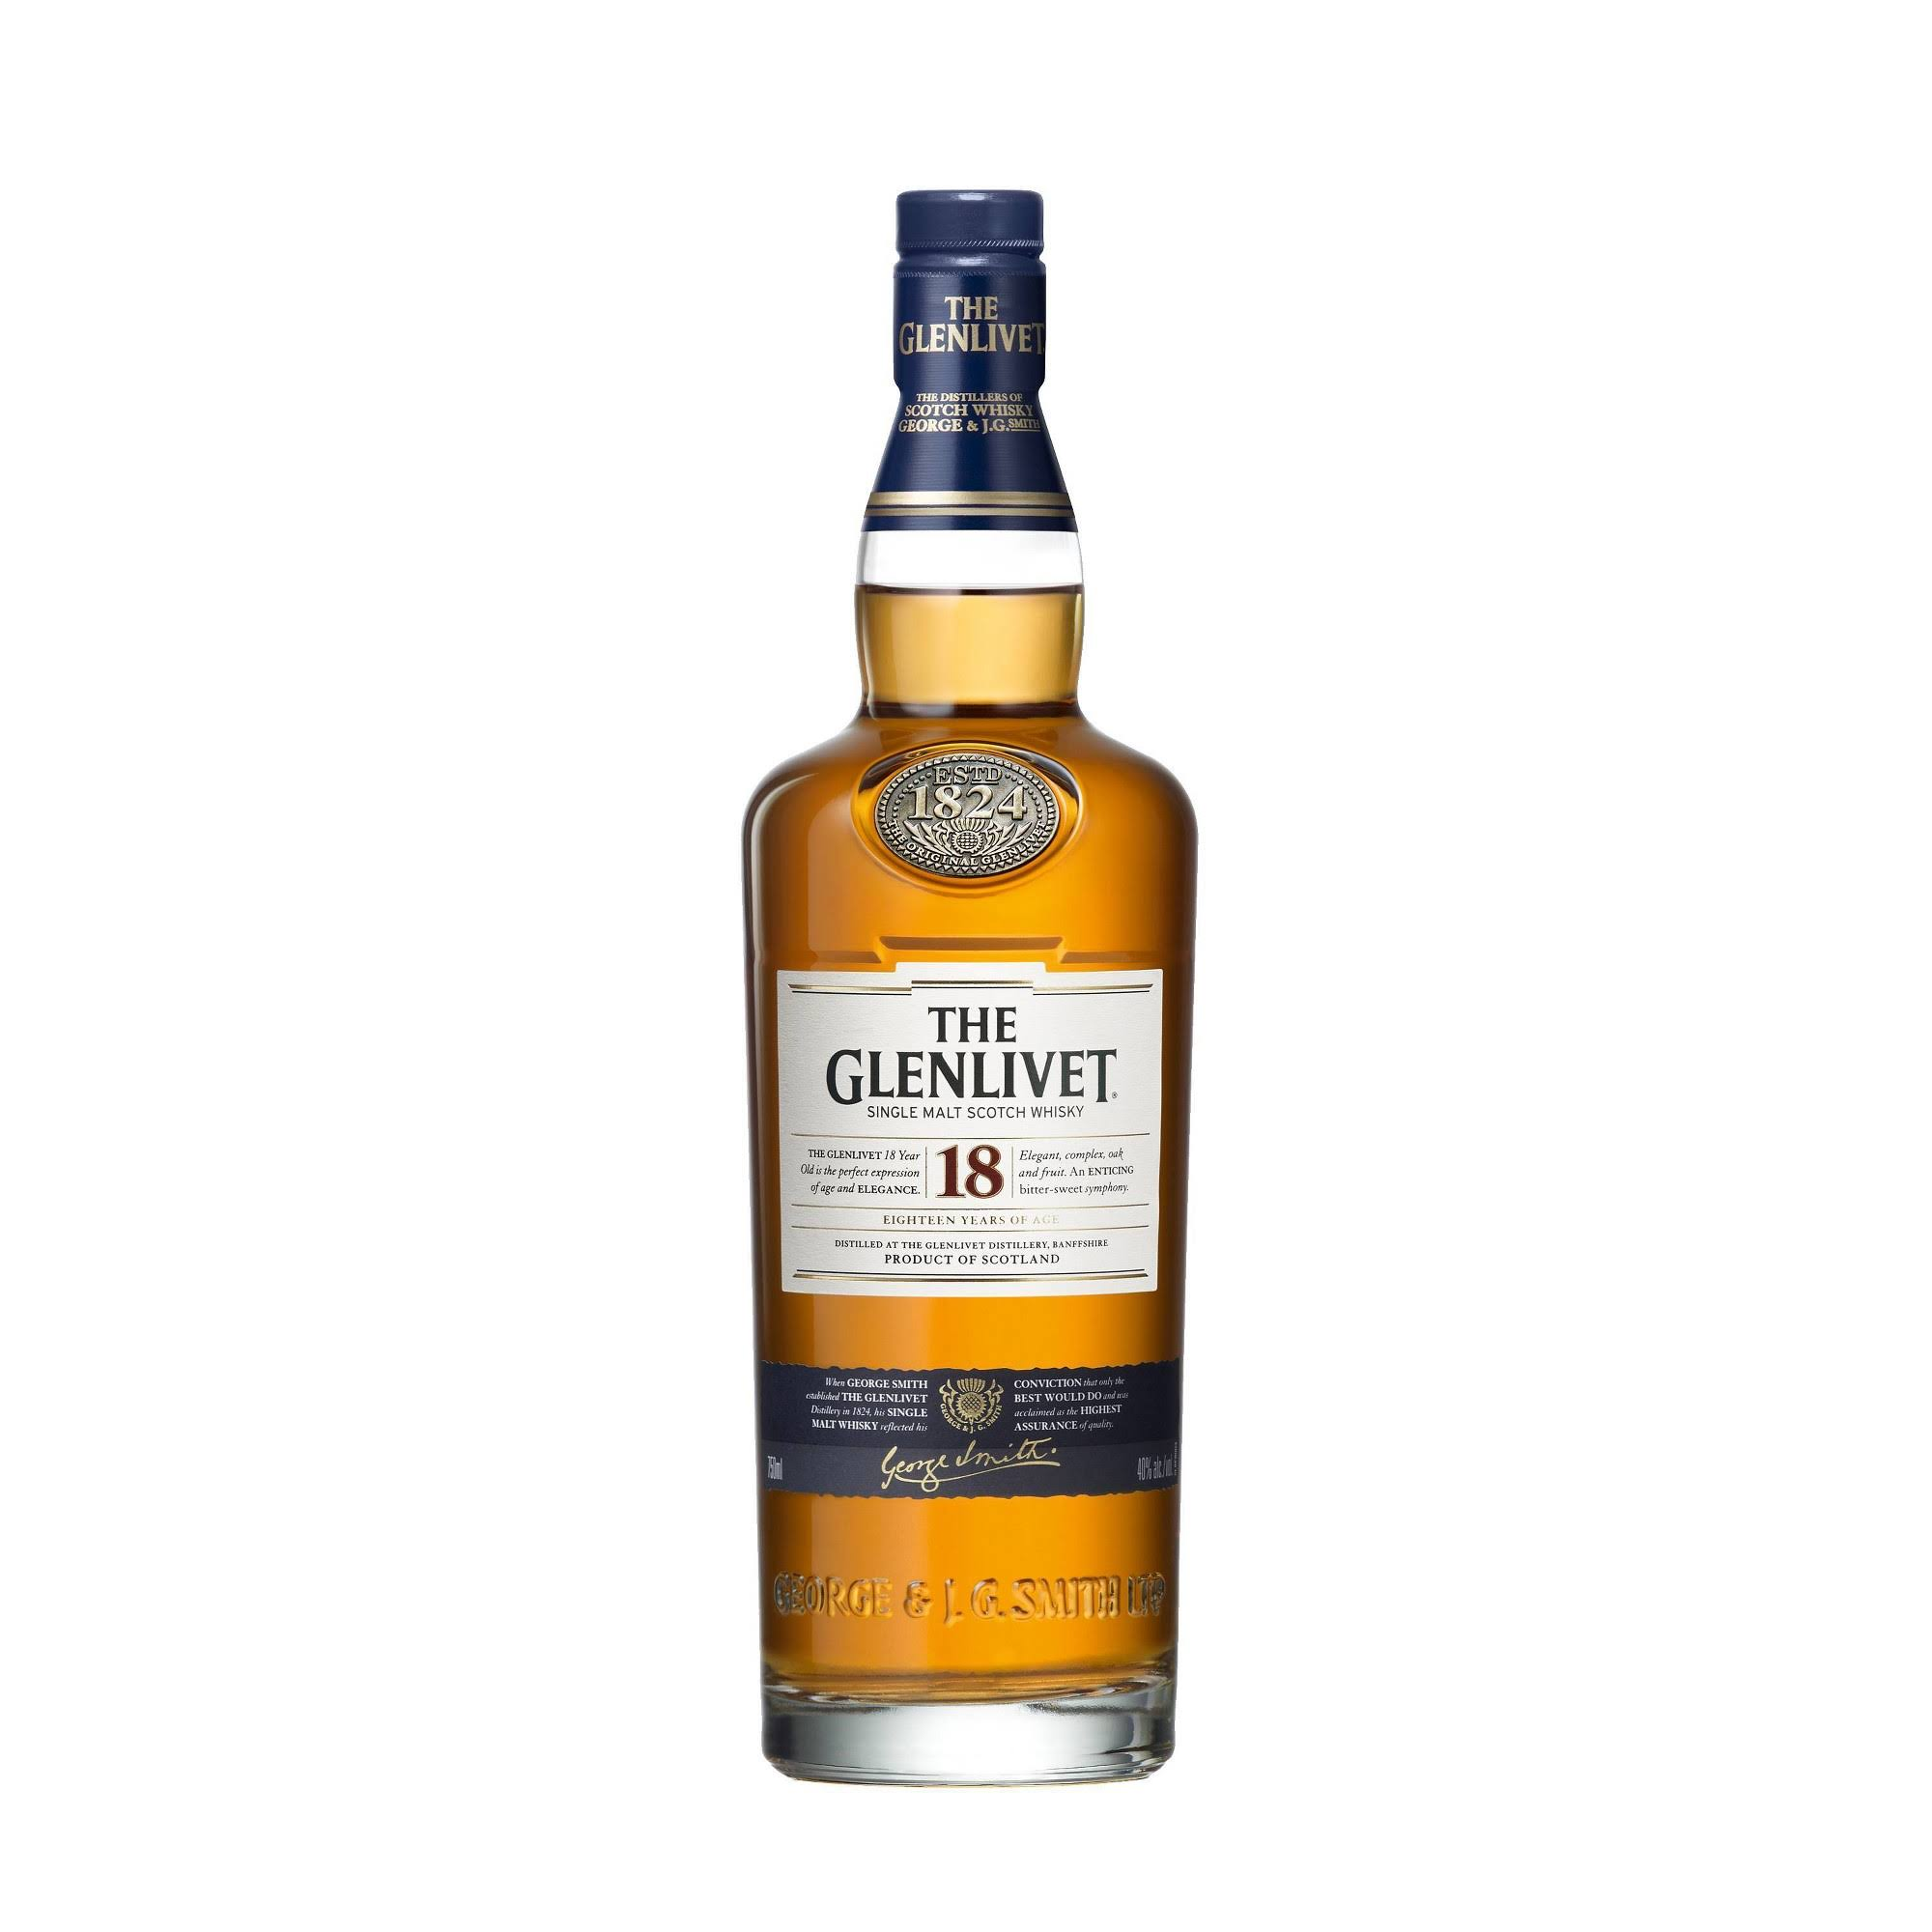 Glenlivet Whisky, Scotch, Single Malt - 750 ml